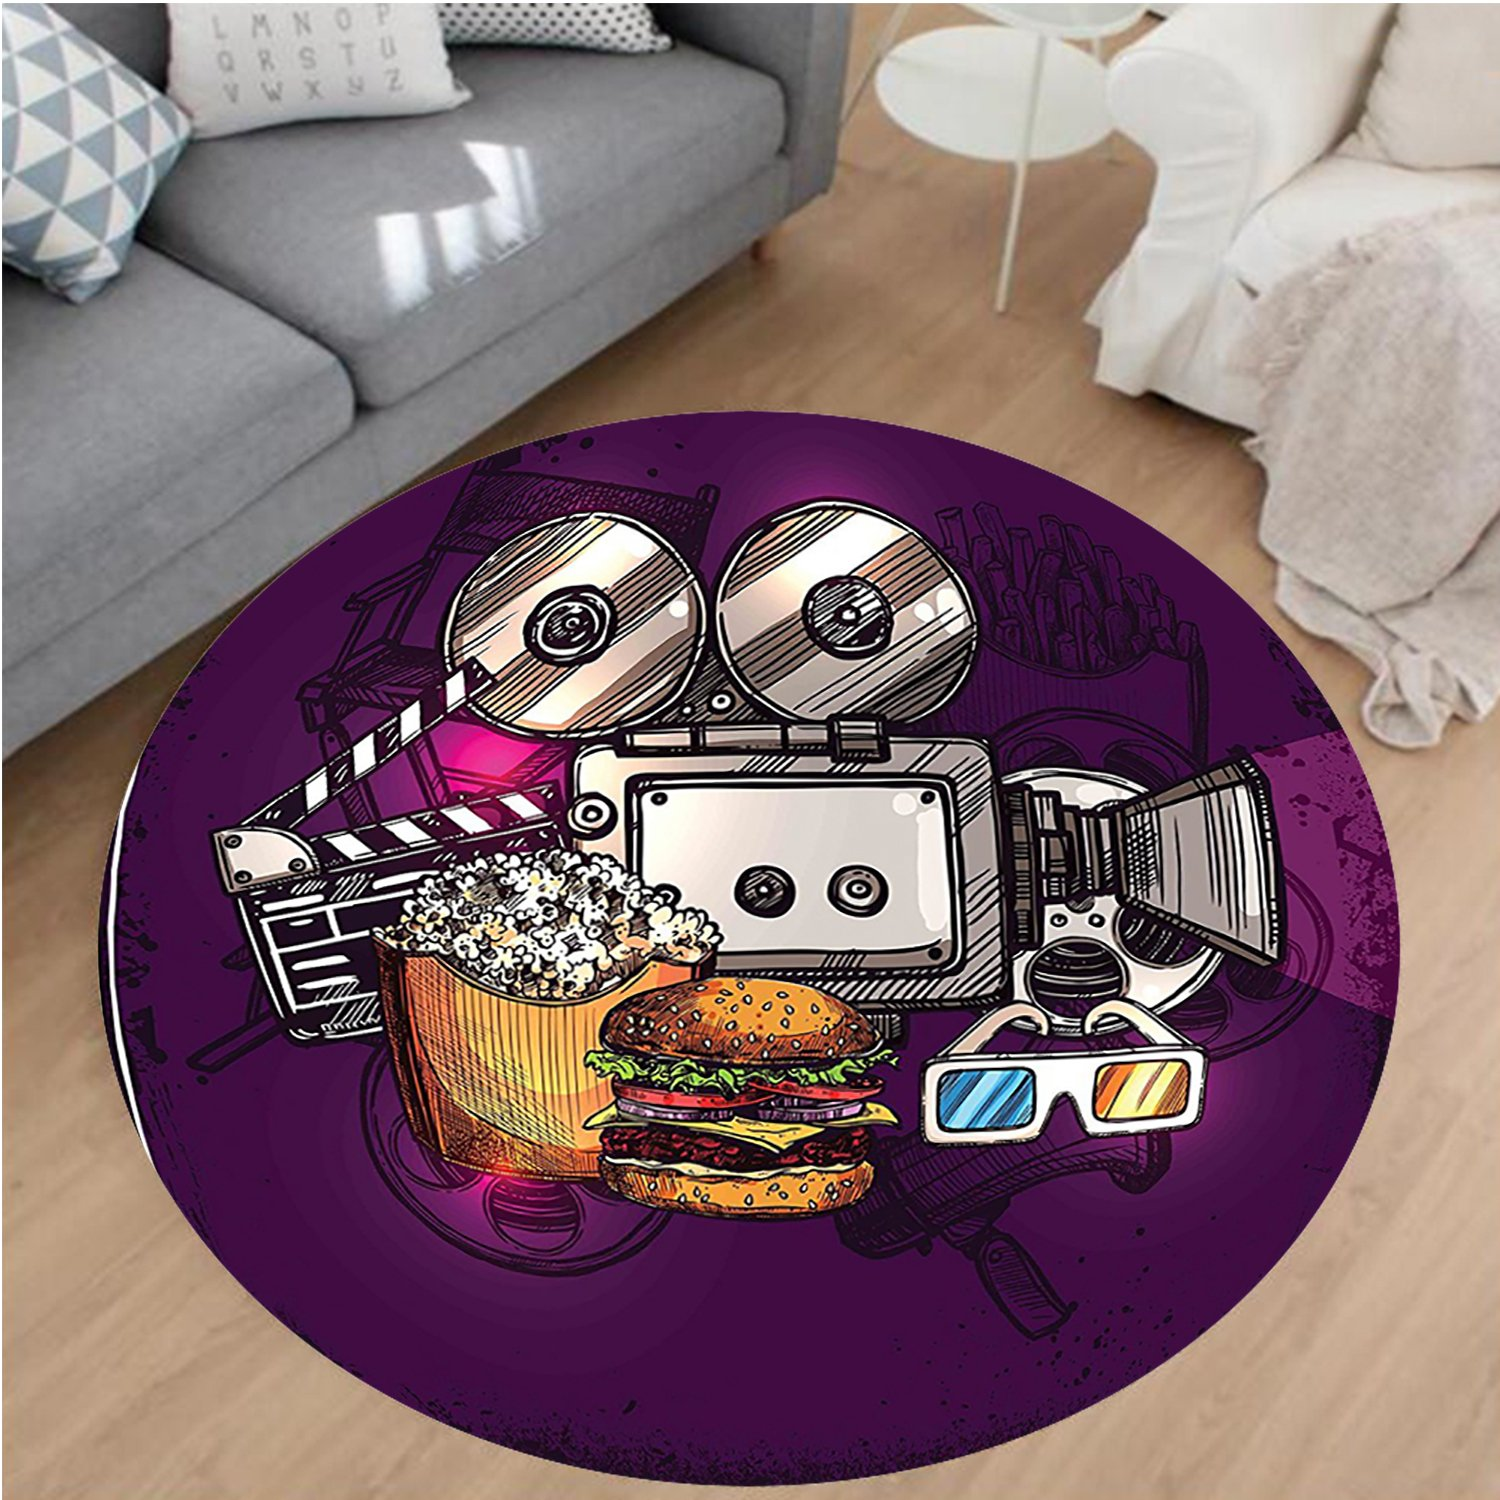 Nalahome Modern Flannel Microfiber Non-Slip Machine Washable Round Area Rug-or Cartoon like Cinema Movie Image Burgers Popcorns Glasses Art Print Plum Ginger Dimgrey area rugs Home Decor-Round 67''